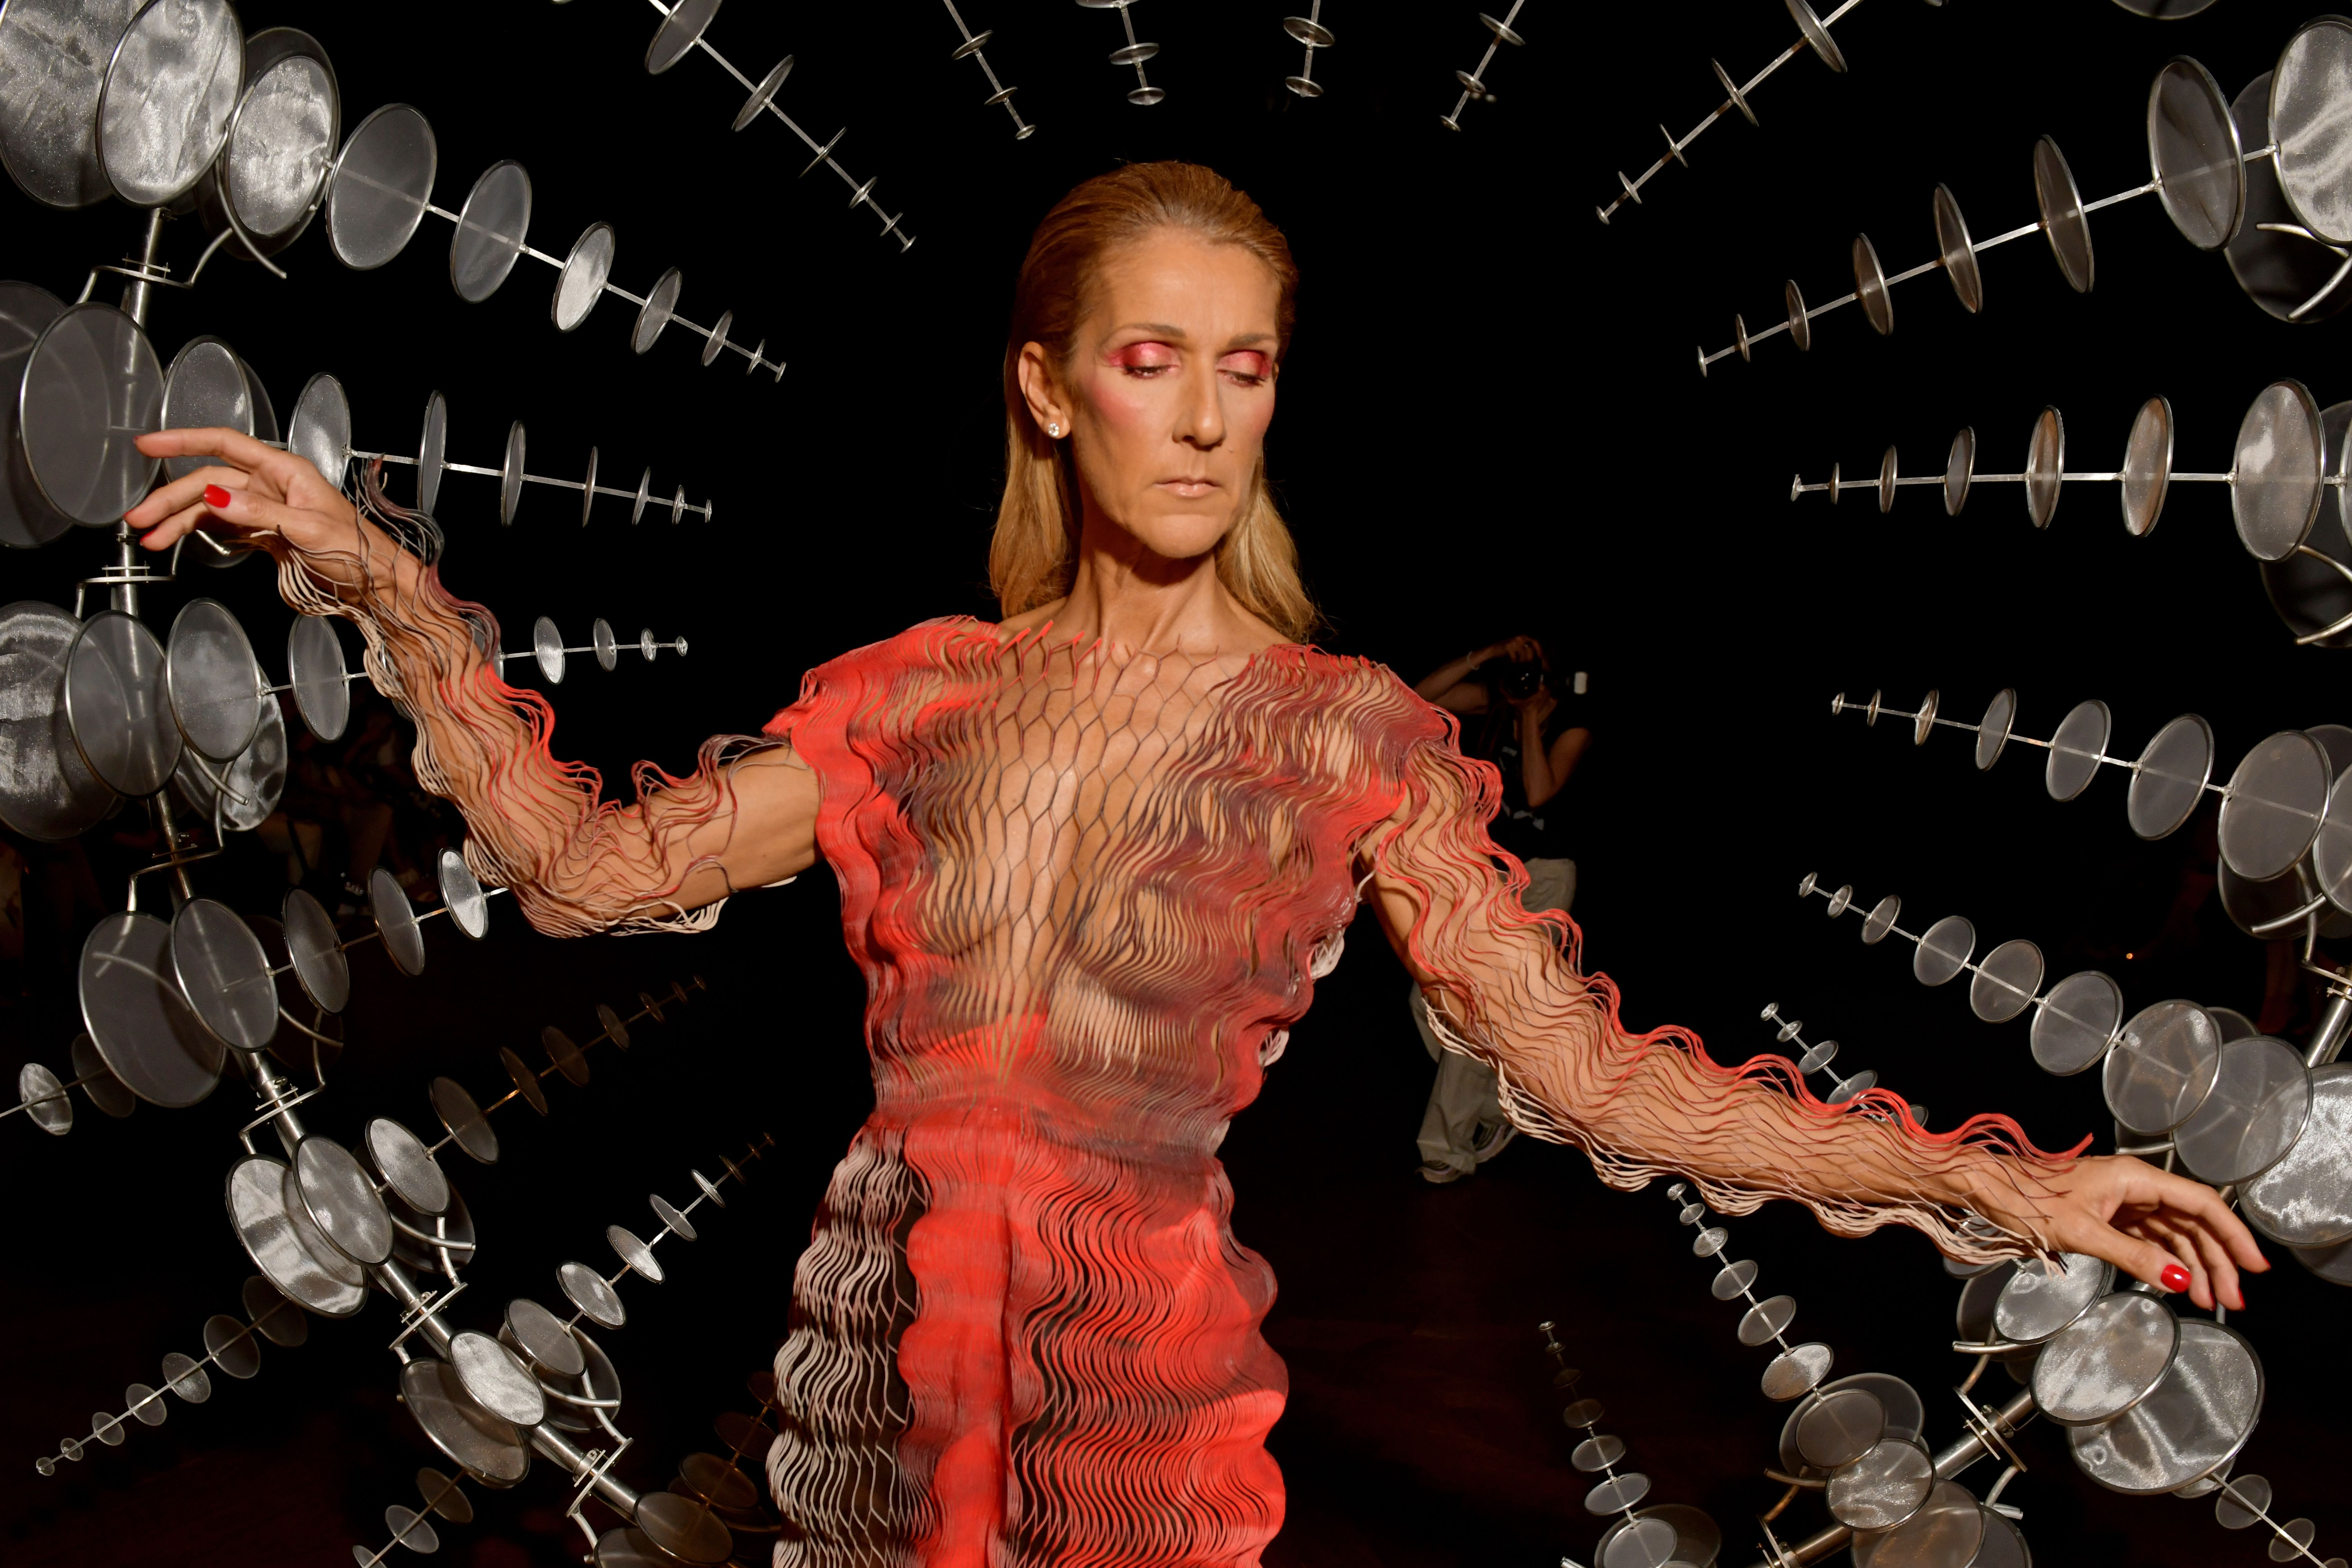 Celine Dion in the front rowIris van Herpen show, Front Row, Fall Winter 2019, Haute Couture Fashion Week, Paris, France - 01 Jul 2019